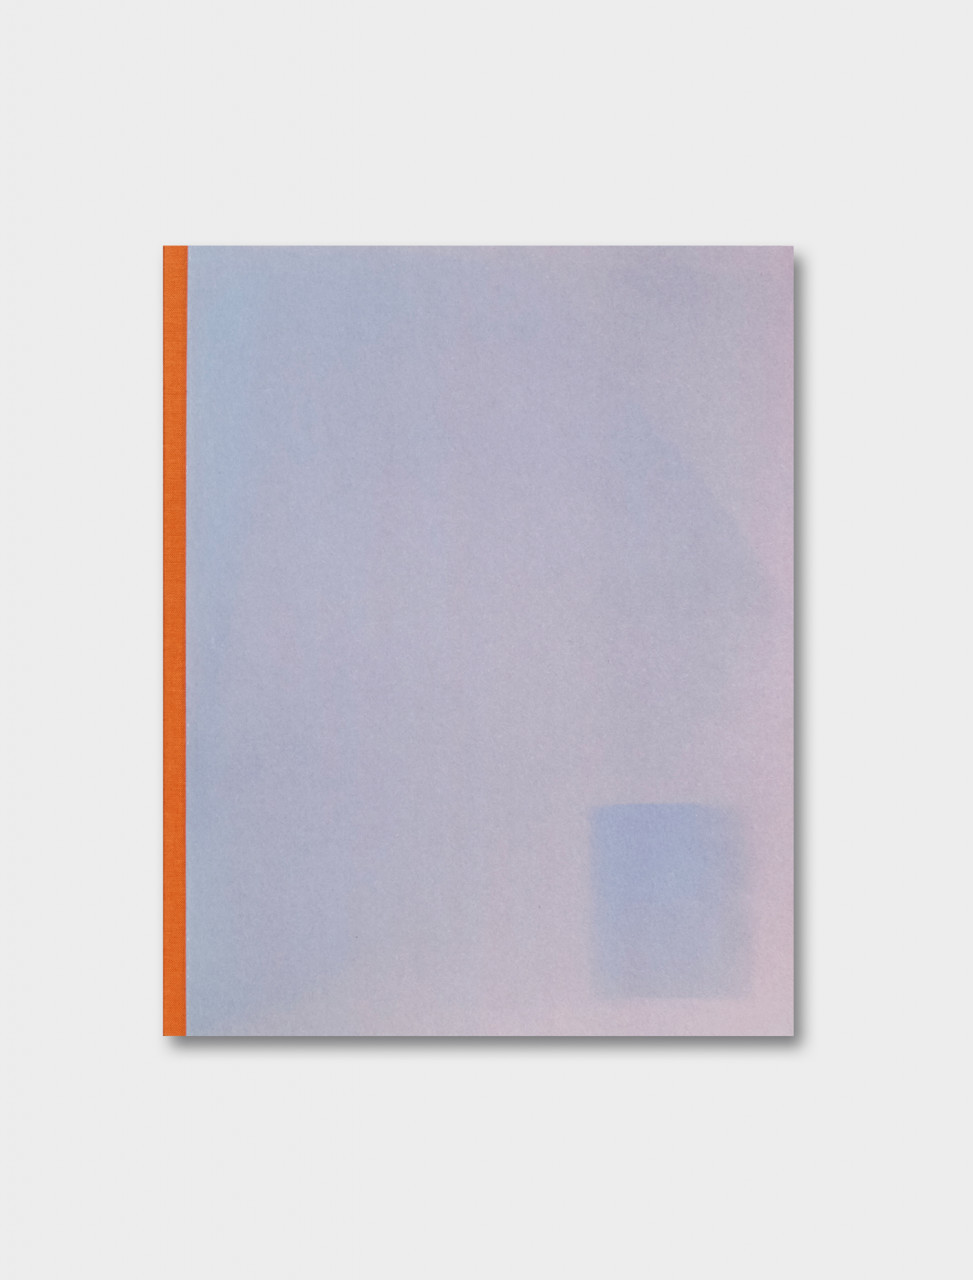 Omaha Sketchbook by Gregory Halpern. Published by Mack Books.